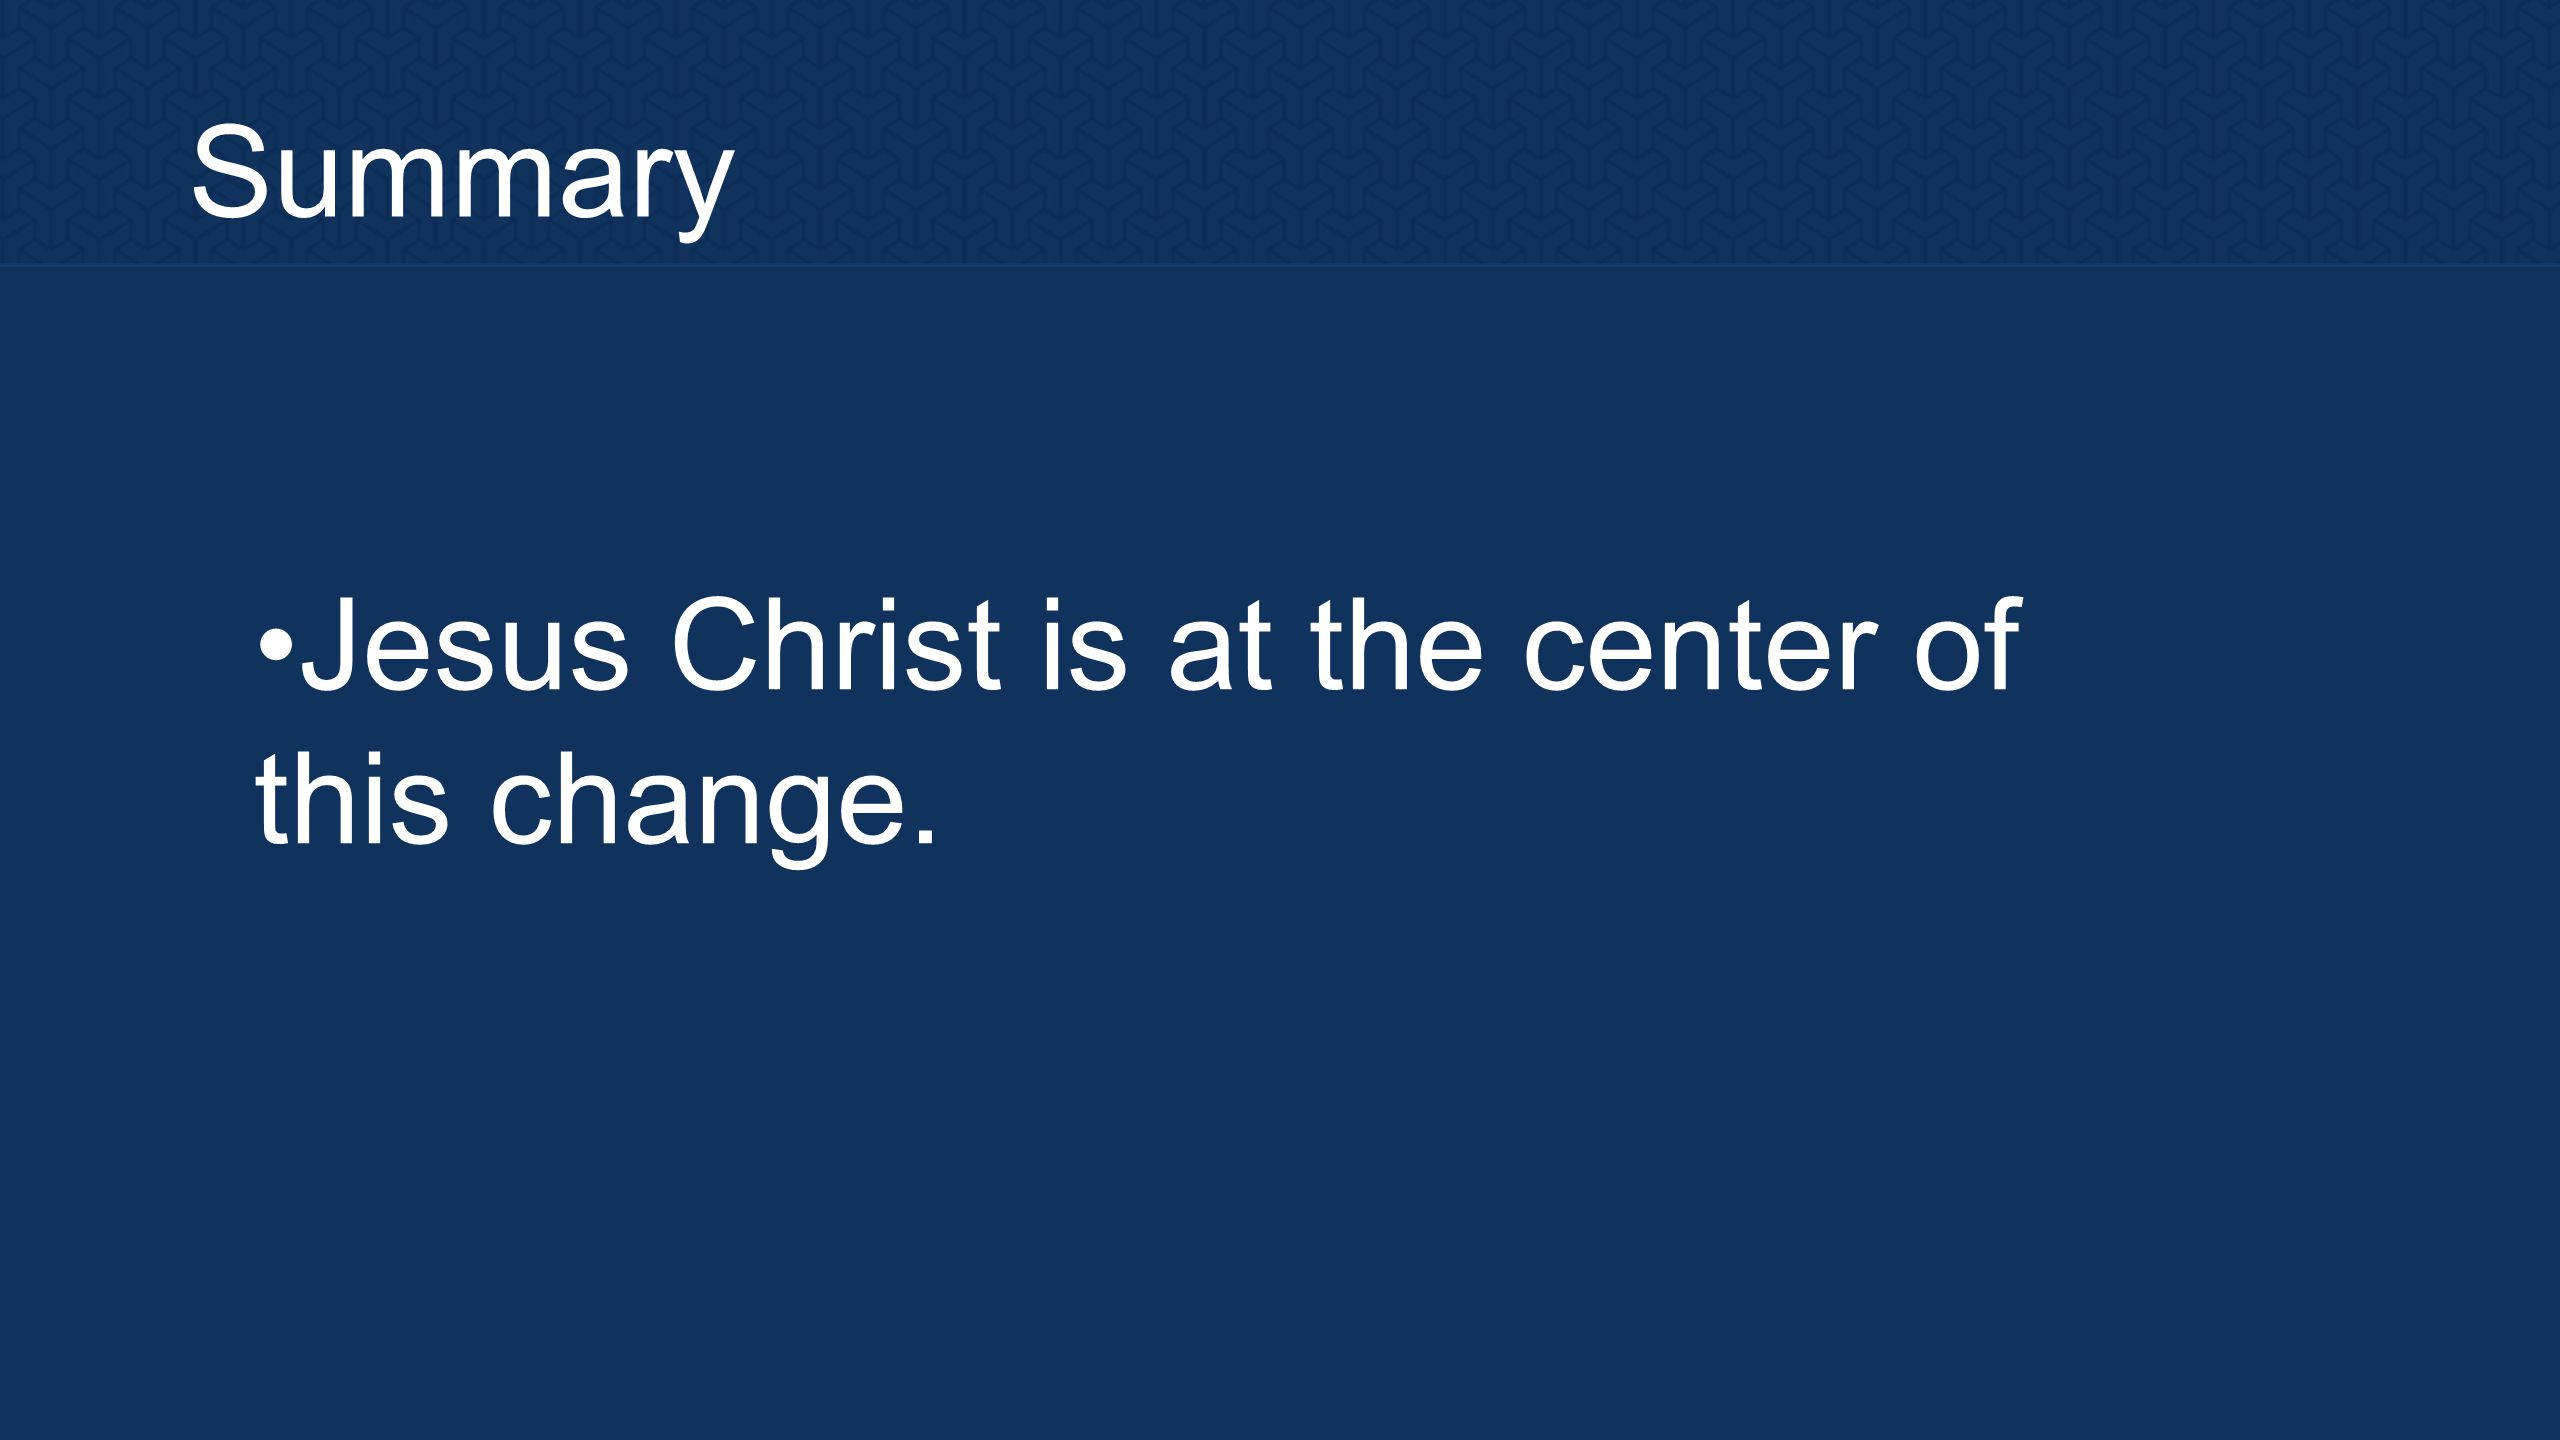 Summary Jesus Christ is at the center of this change.